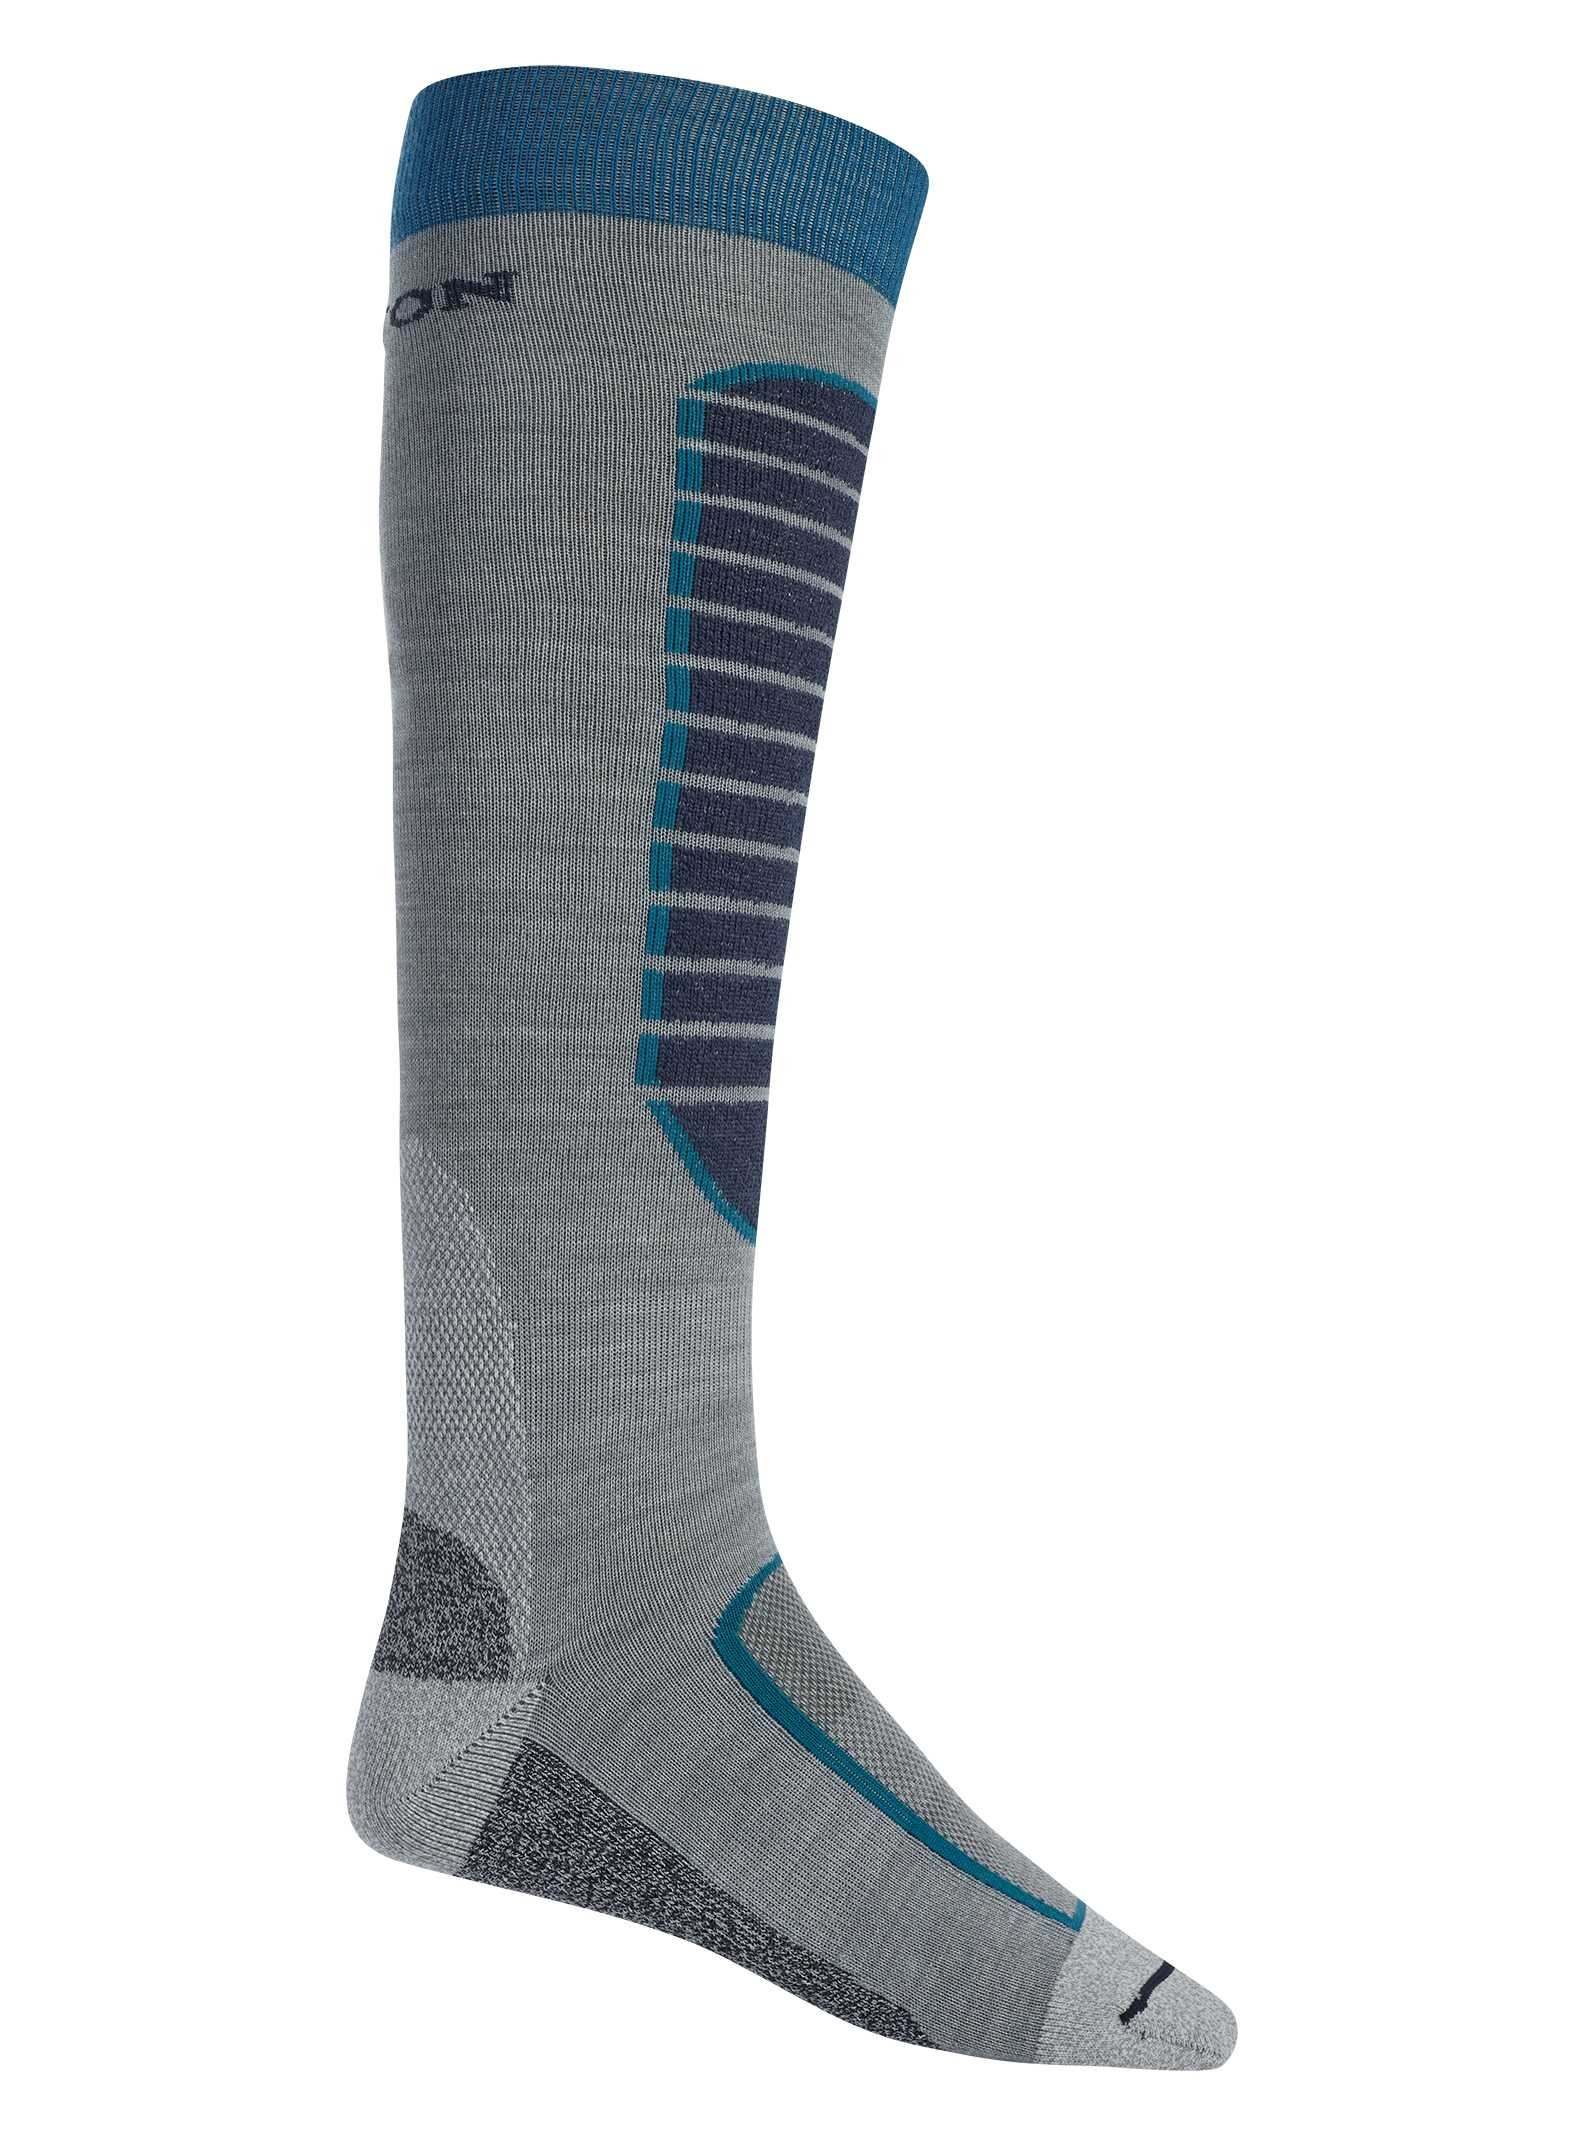 Burton Men's Merino Phase Snowboard Socks Monument Heather Size Large 10.5-13.5 by Burton